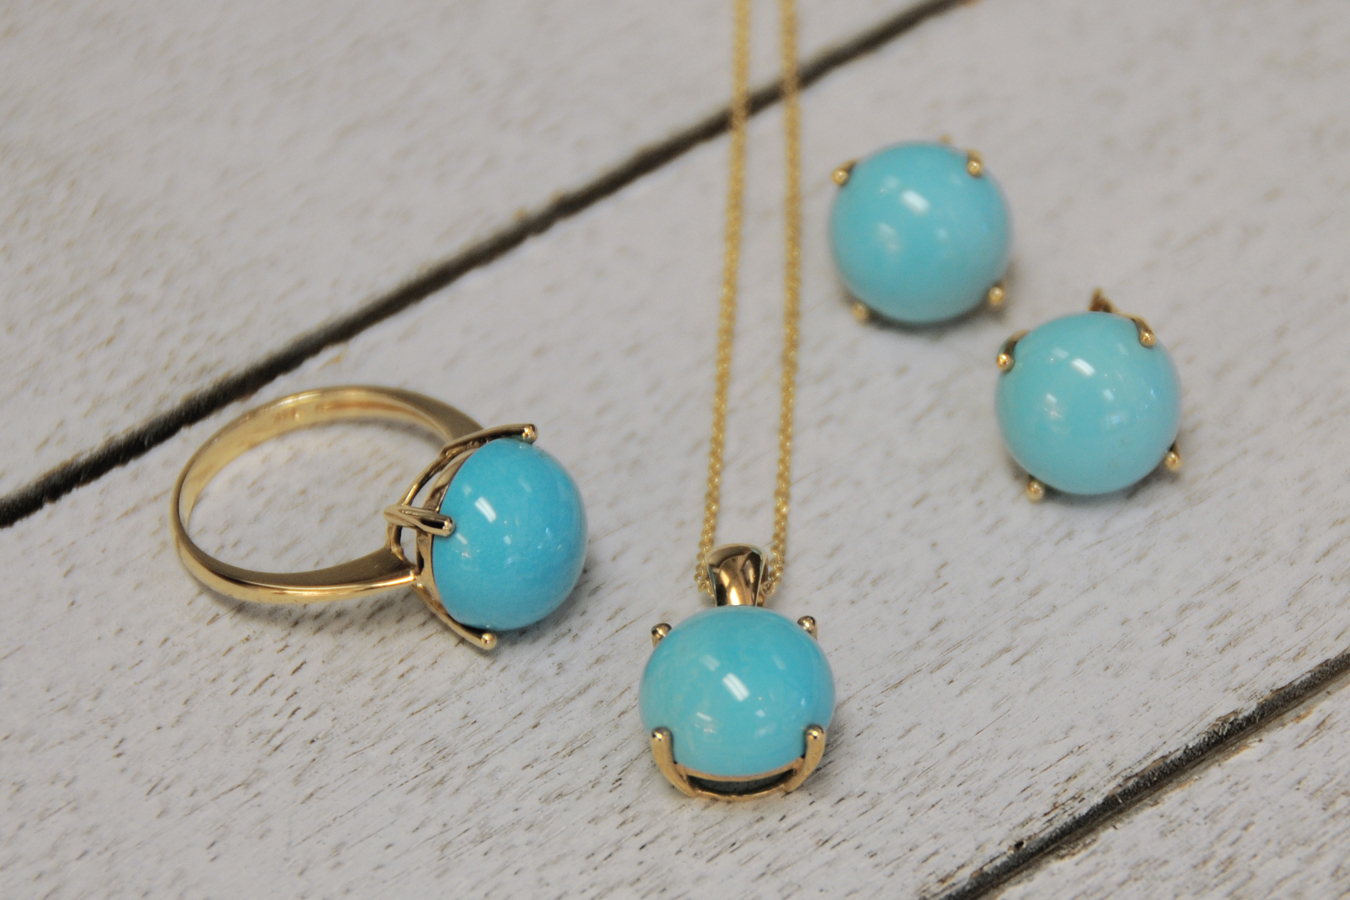 Turquoise Ring, Pendant, and Earring Suite